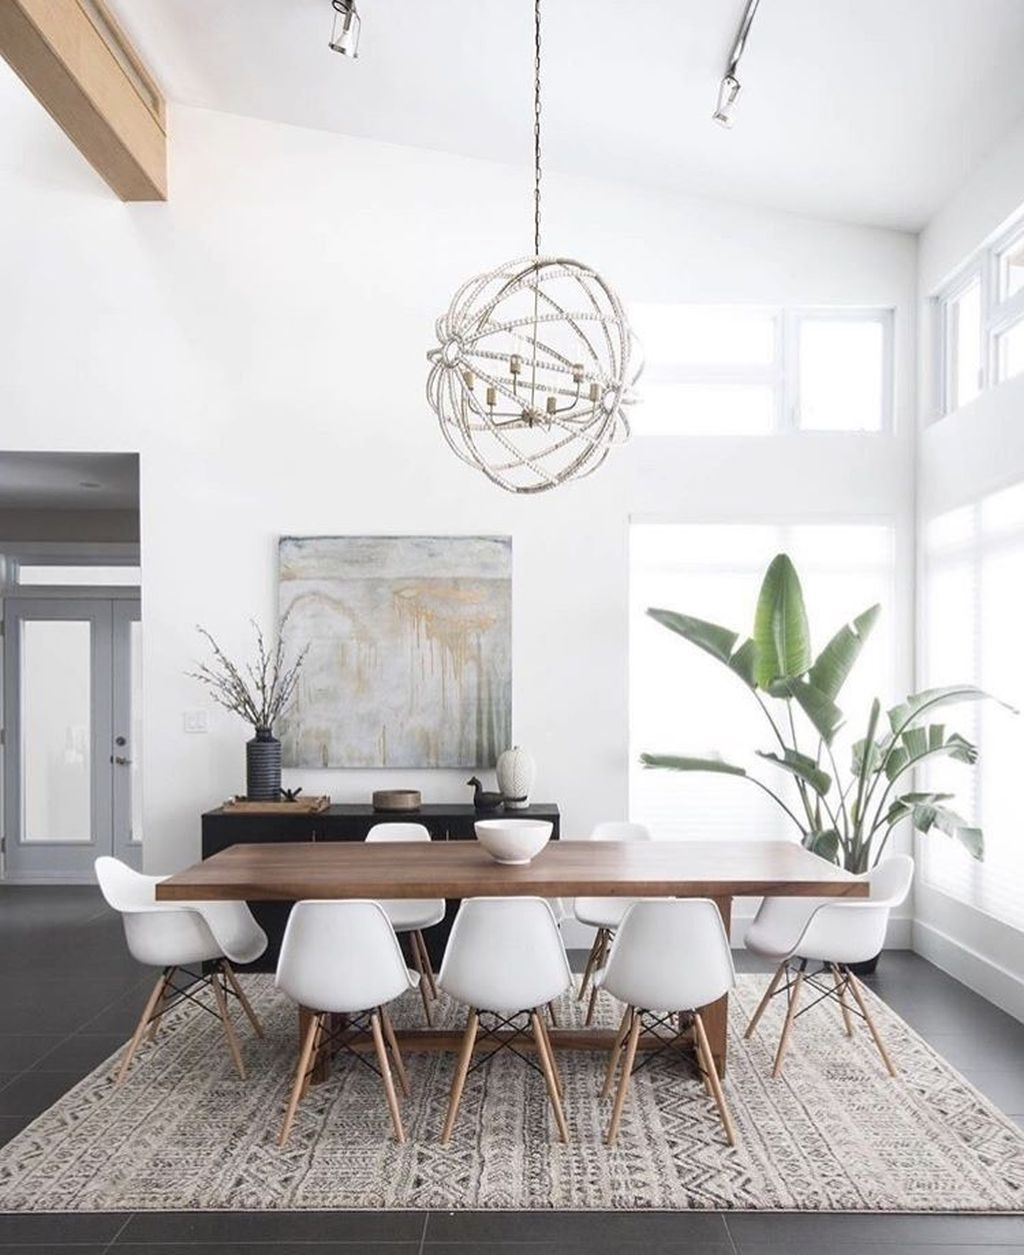 Best Minimalist Dining Room Design Ideas For Dinner With Your Family34